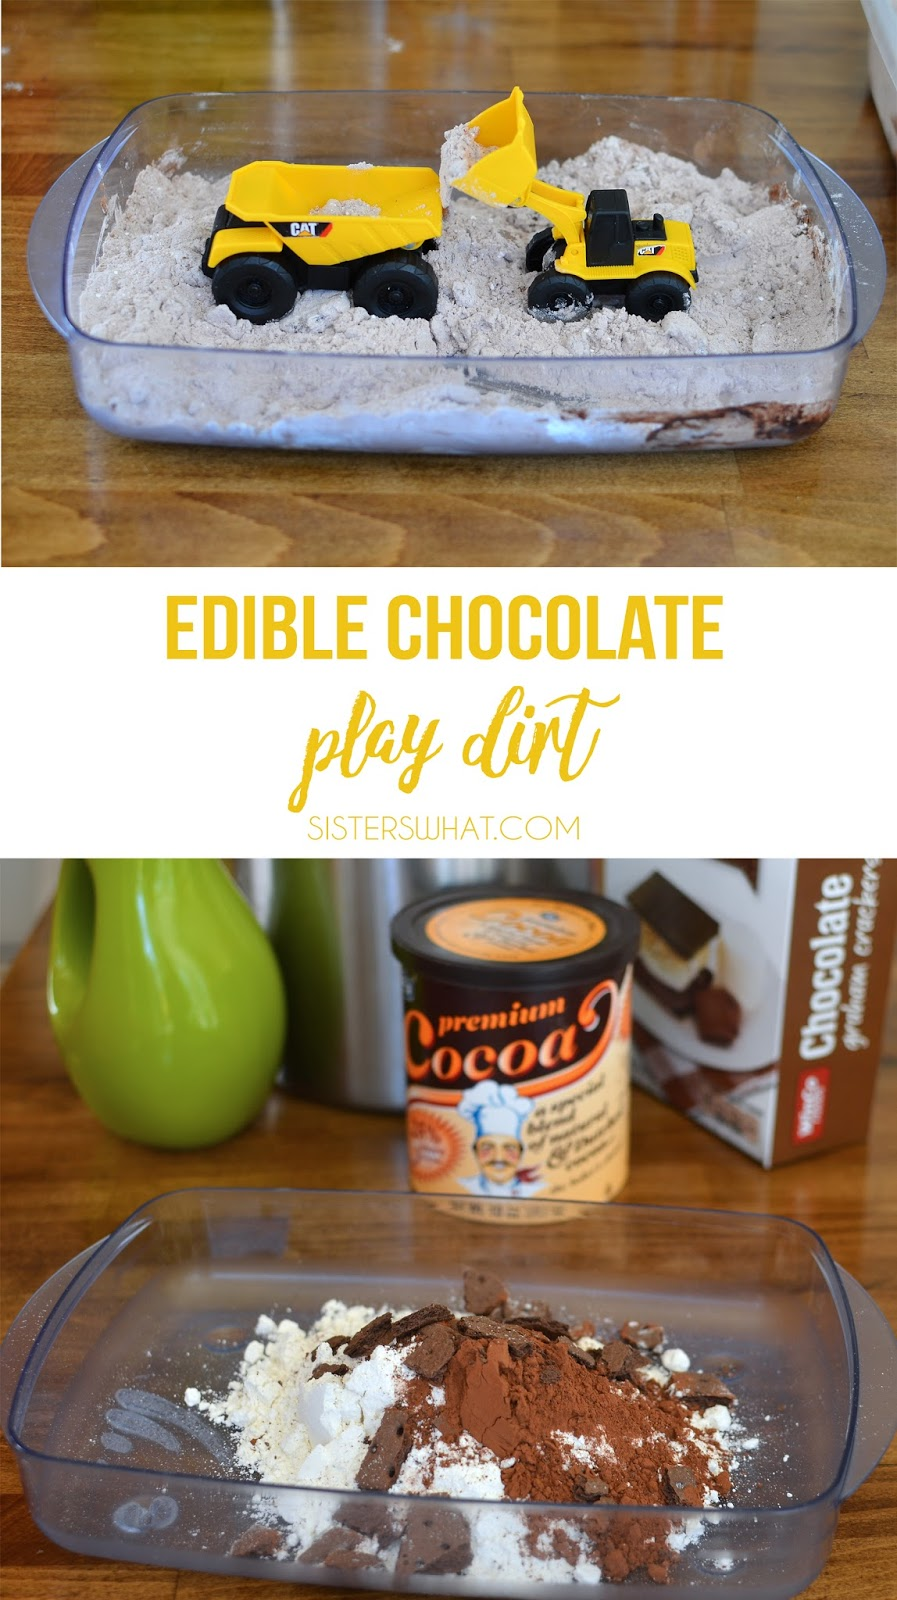 edible dirt made out of chocolate to play with mini plastic trucks or mini plastic animals